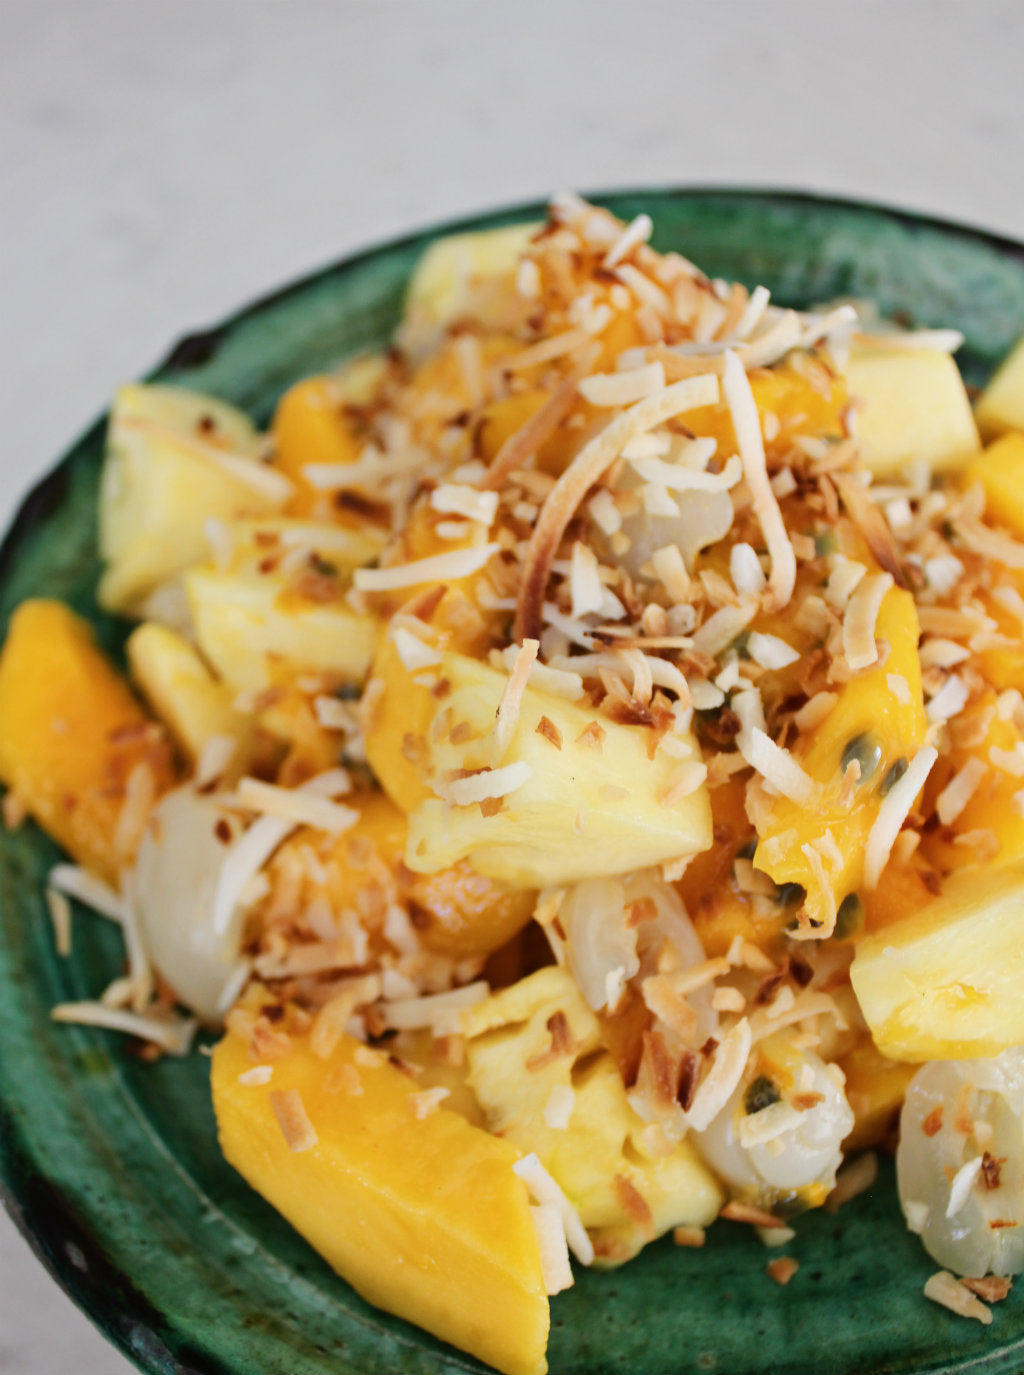 Pineapple, Mango, Lychee and Coconut Fruit Salad